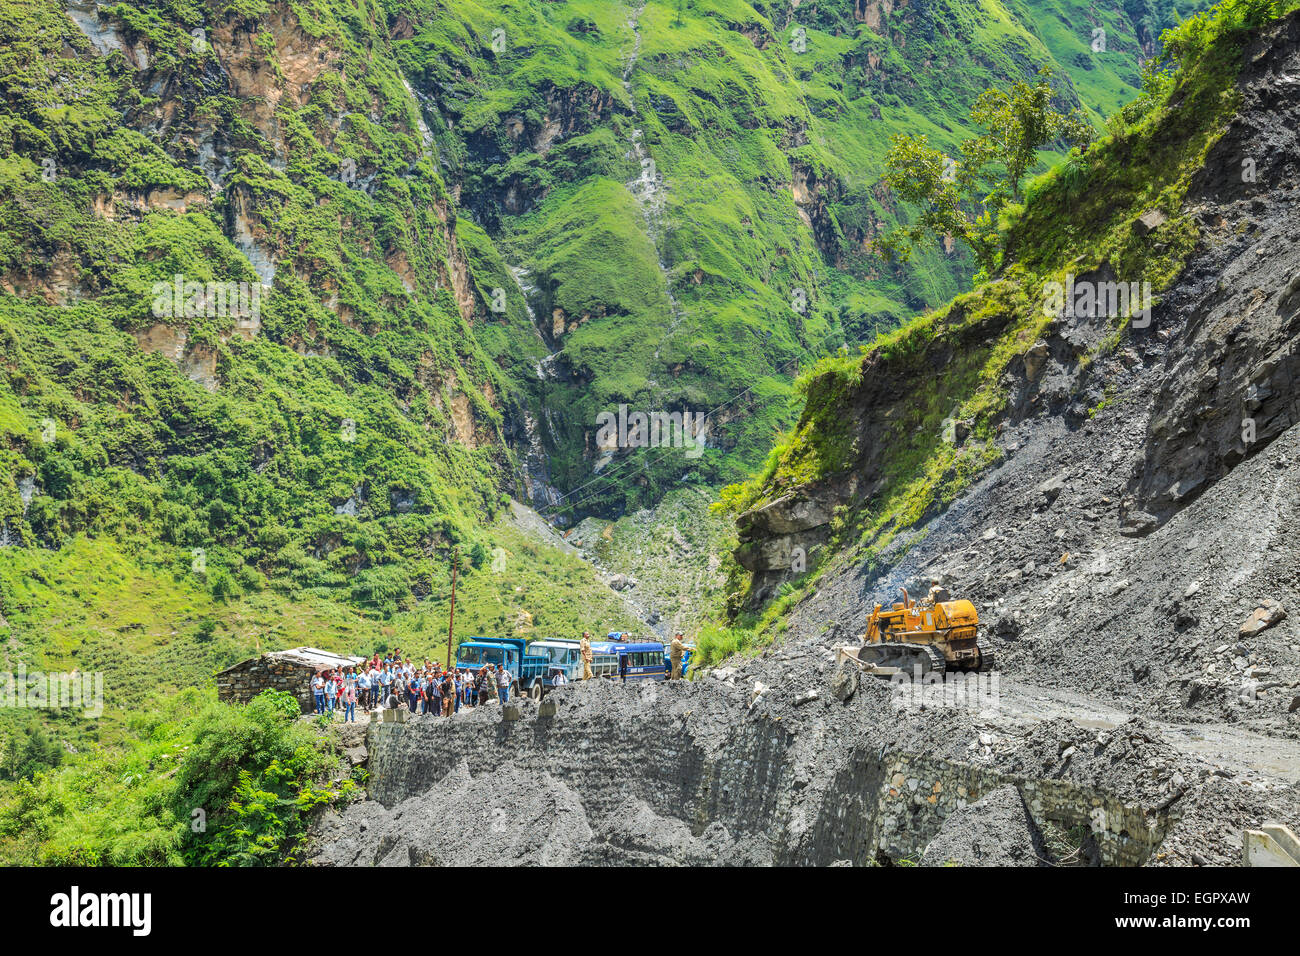 Govinghat, India - Aug 9 : The officer from Indian Highway Department clear the road that was blocking after landslide Stock Photo